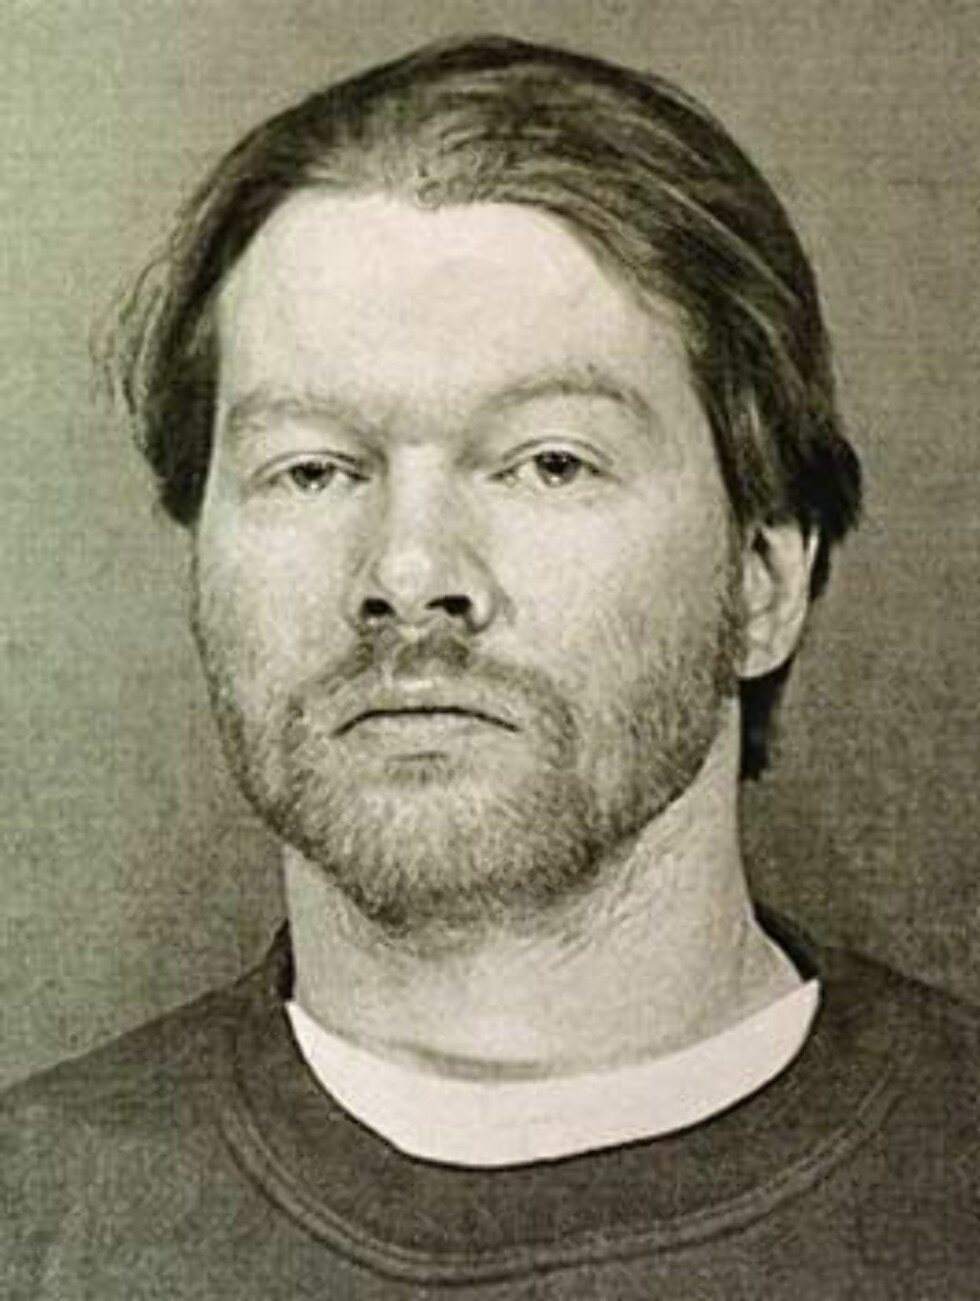 Axl Rose, lead singer for the band Guns N' Roses, shown here in a Maricopa Sheriffs booking photo after he was arrested Tuesday, Feb. 10, 1998 on a misdemeanor conduct charge for allegedly  verbally abusing a security checkpoint employee at Sky Harbor Air Foto: AP